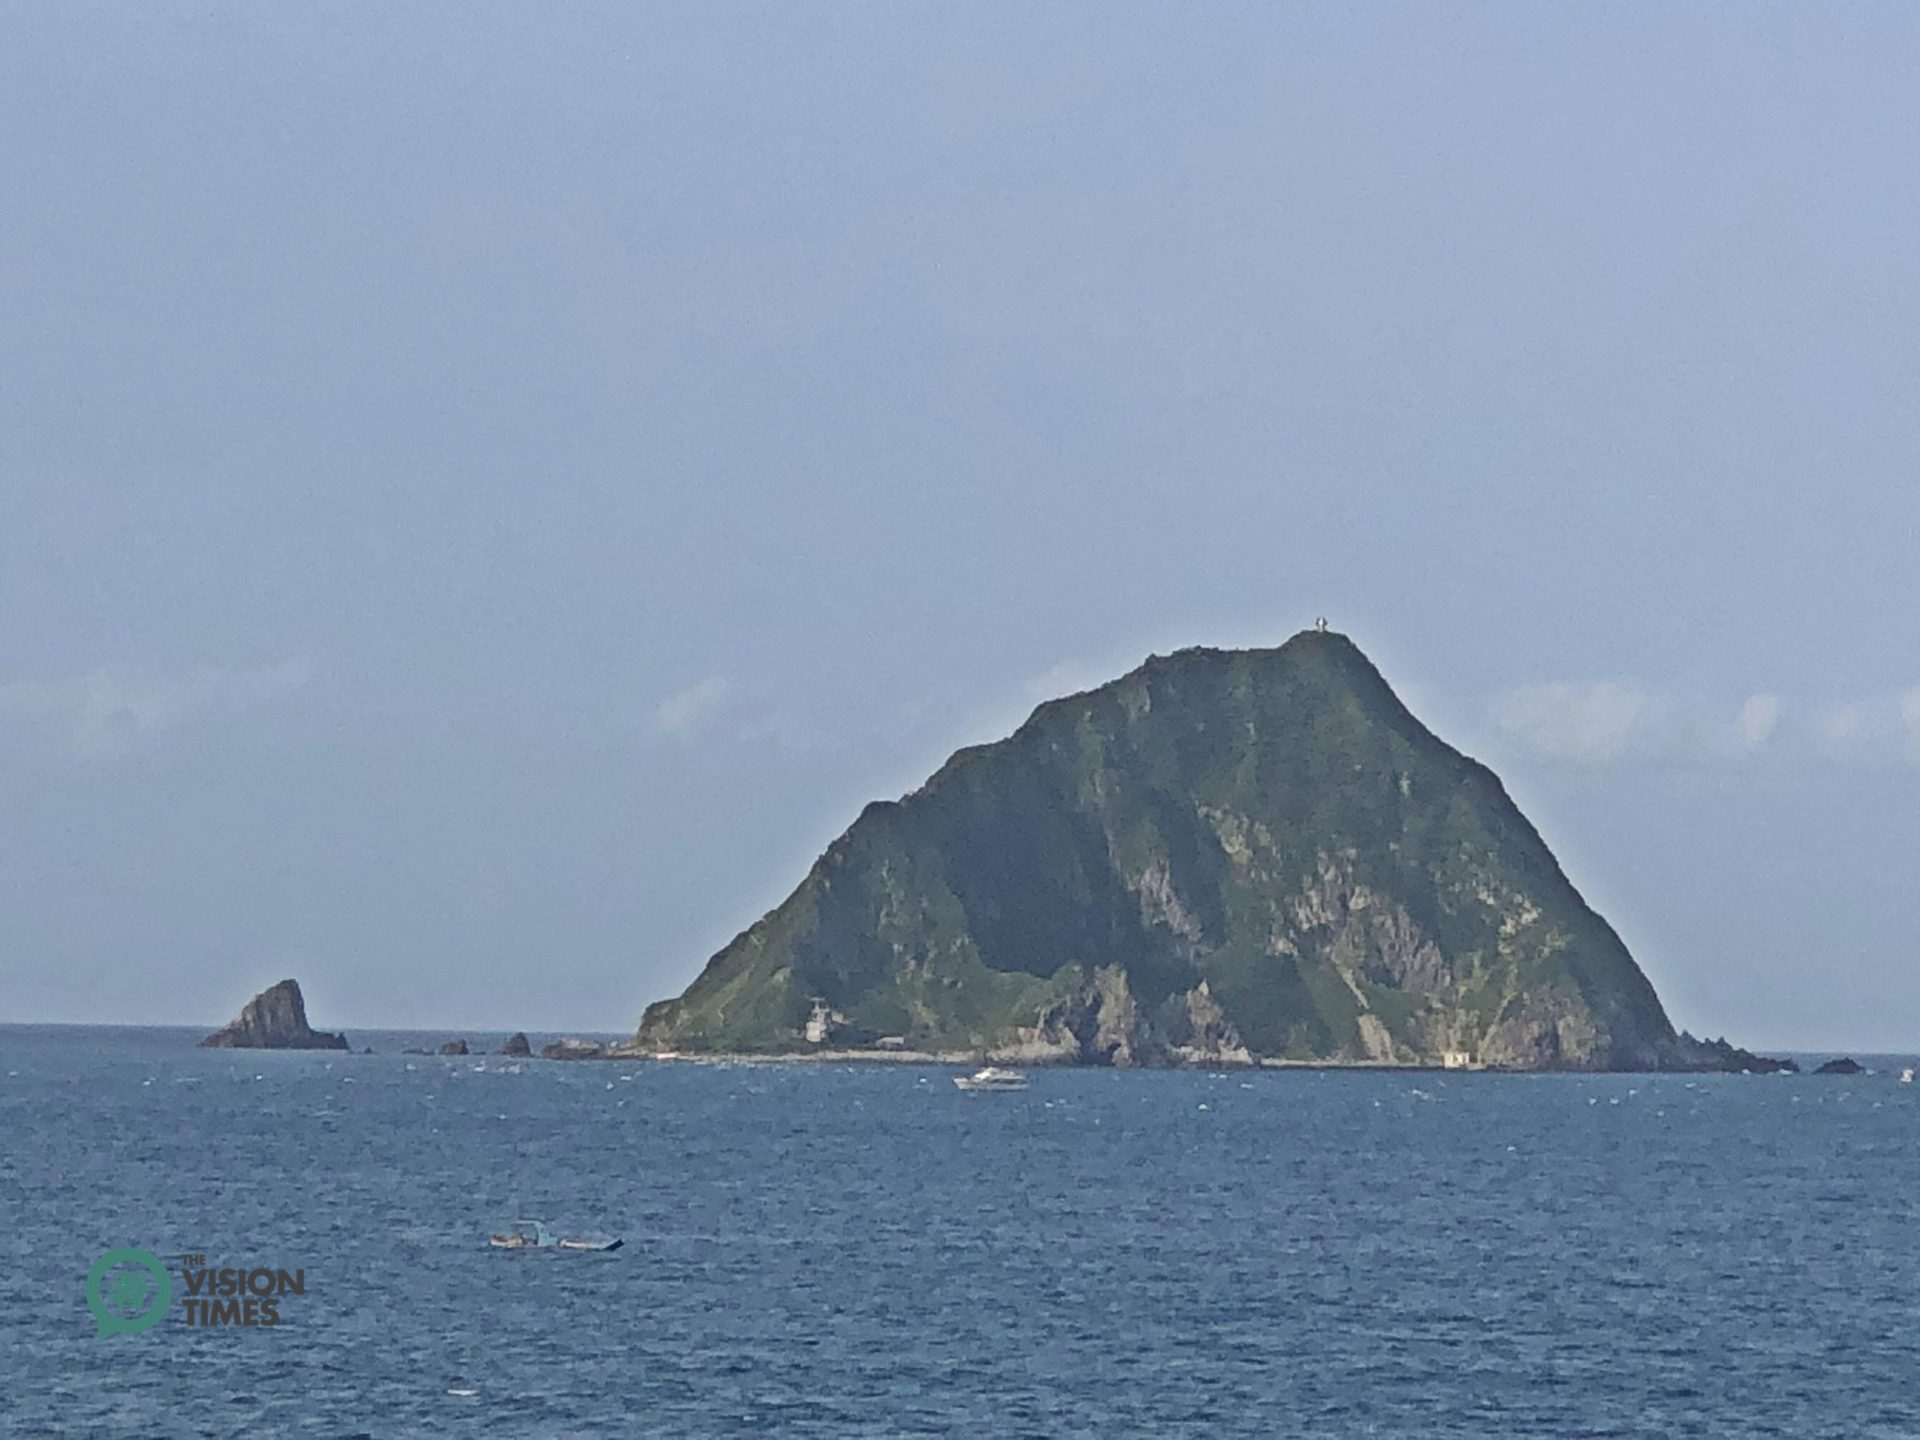 The Keelung Islet with graceful parabolic contour used to be a mysterious island for locals. (Image: Billy Shyu / Vision Times)